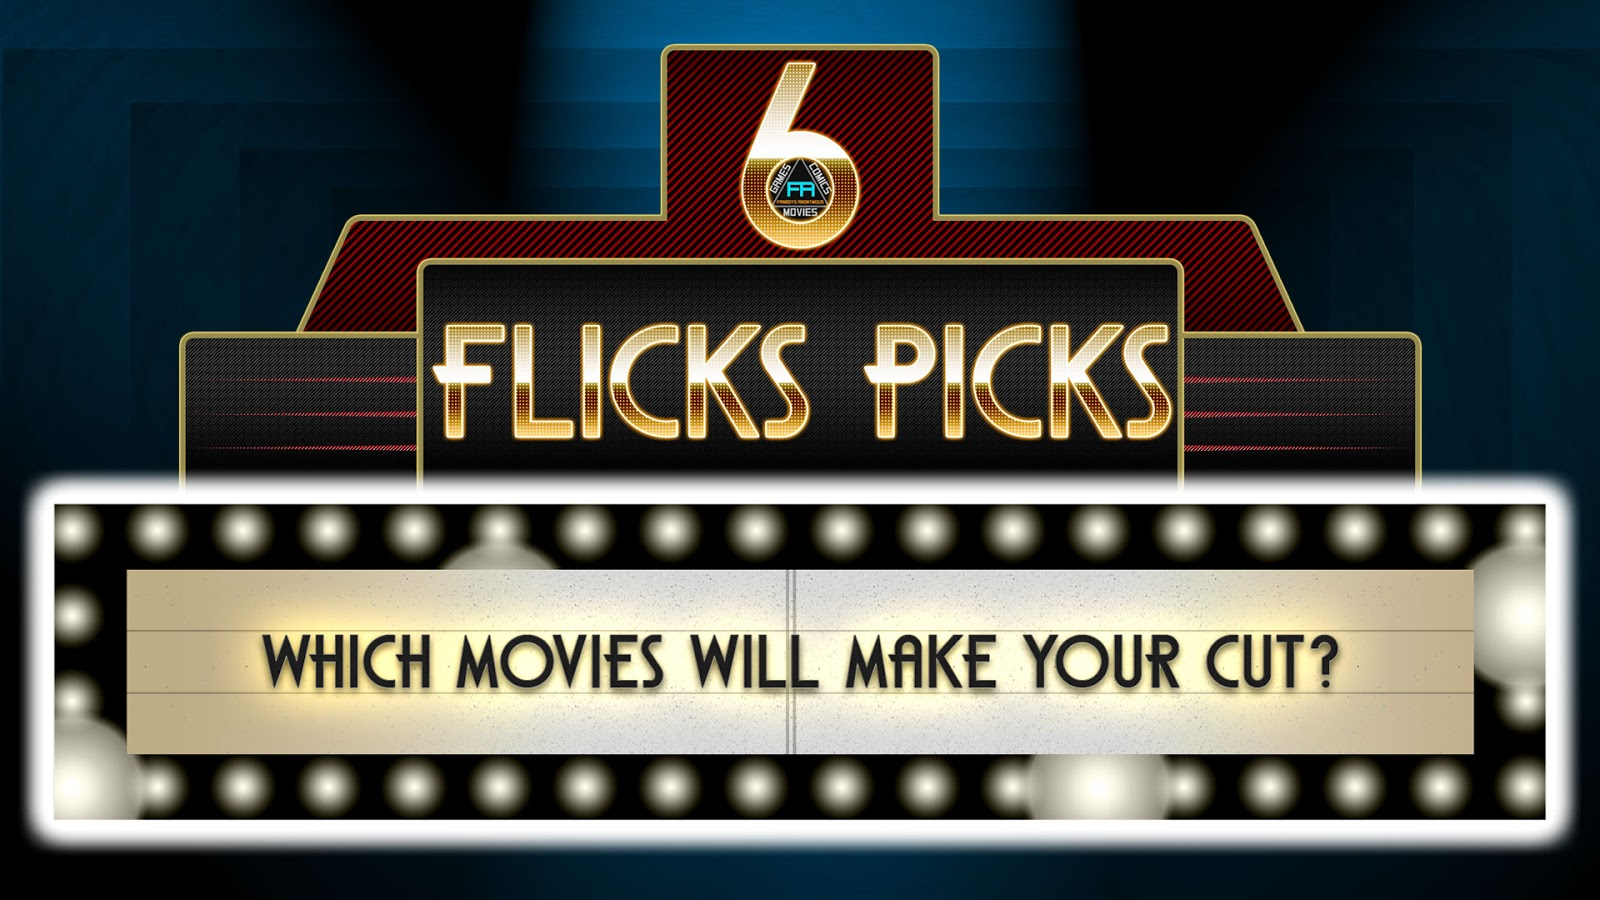 What movies are coming out 2019 6 Flicks Picks